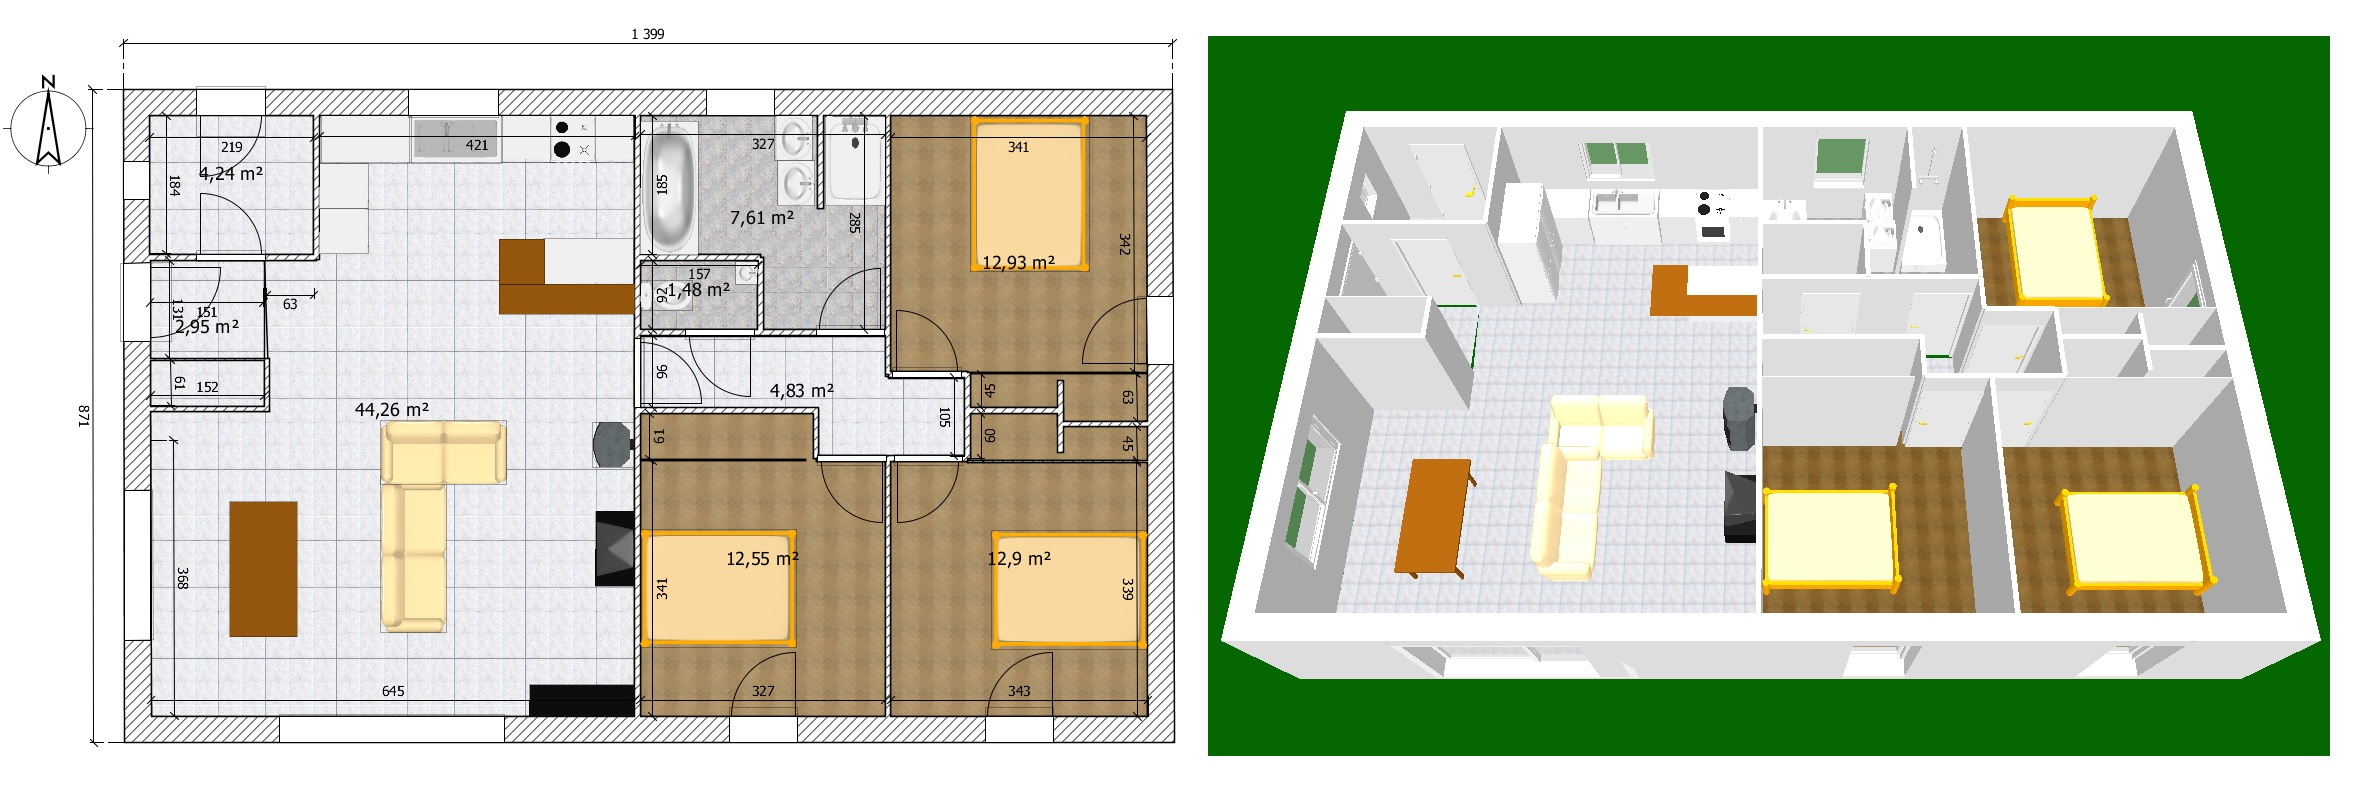 Plan maison 90m2 219 messages page 5 for Construction maison 5 chambres